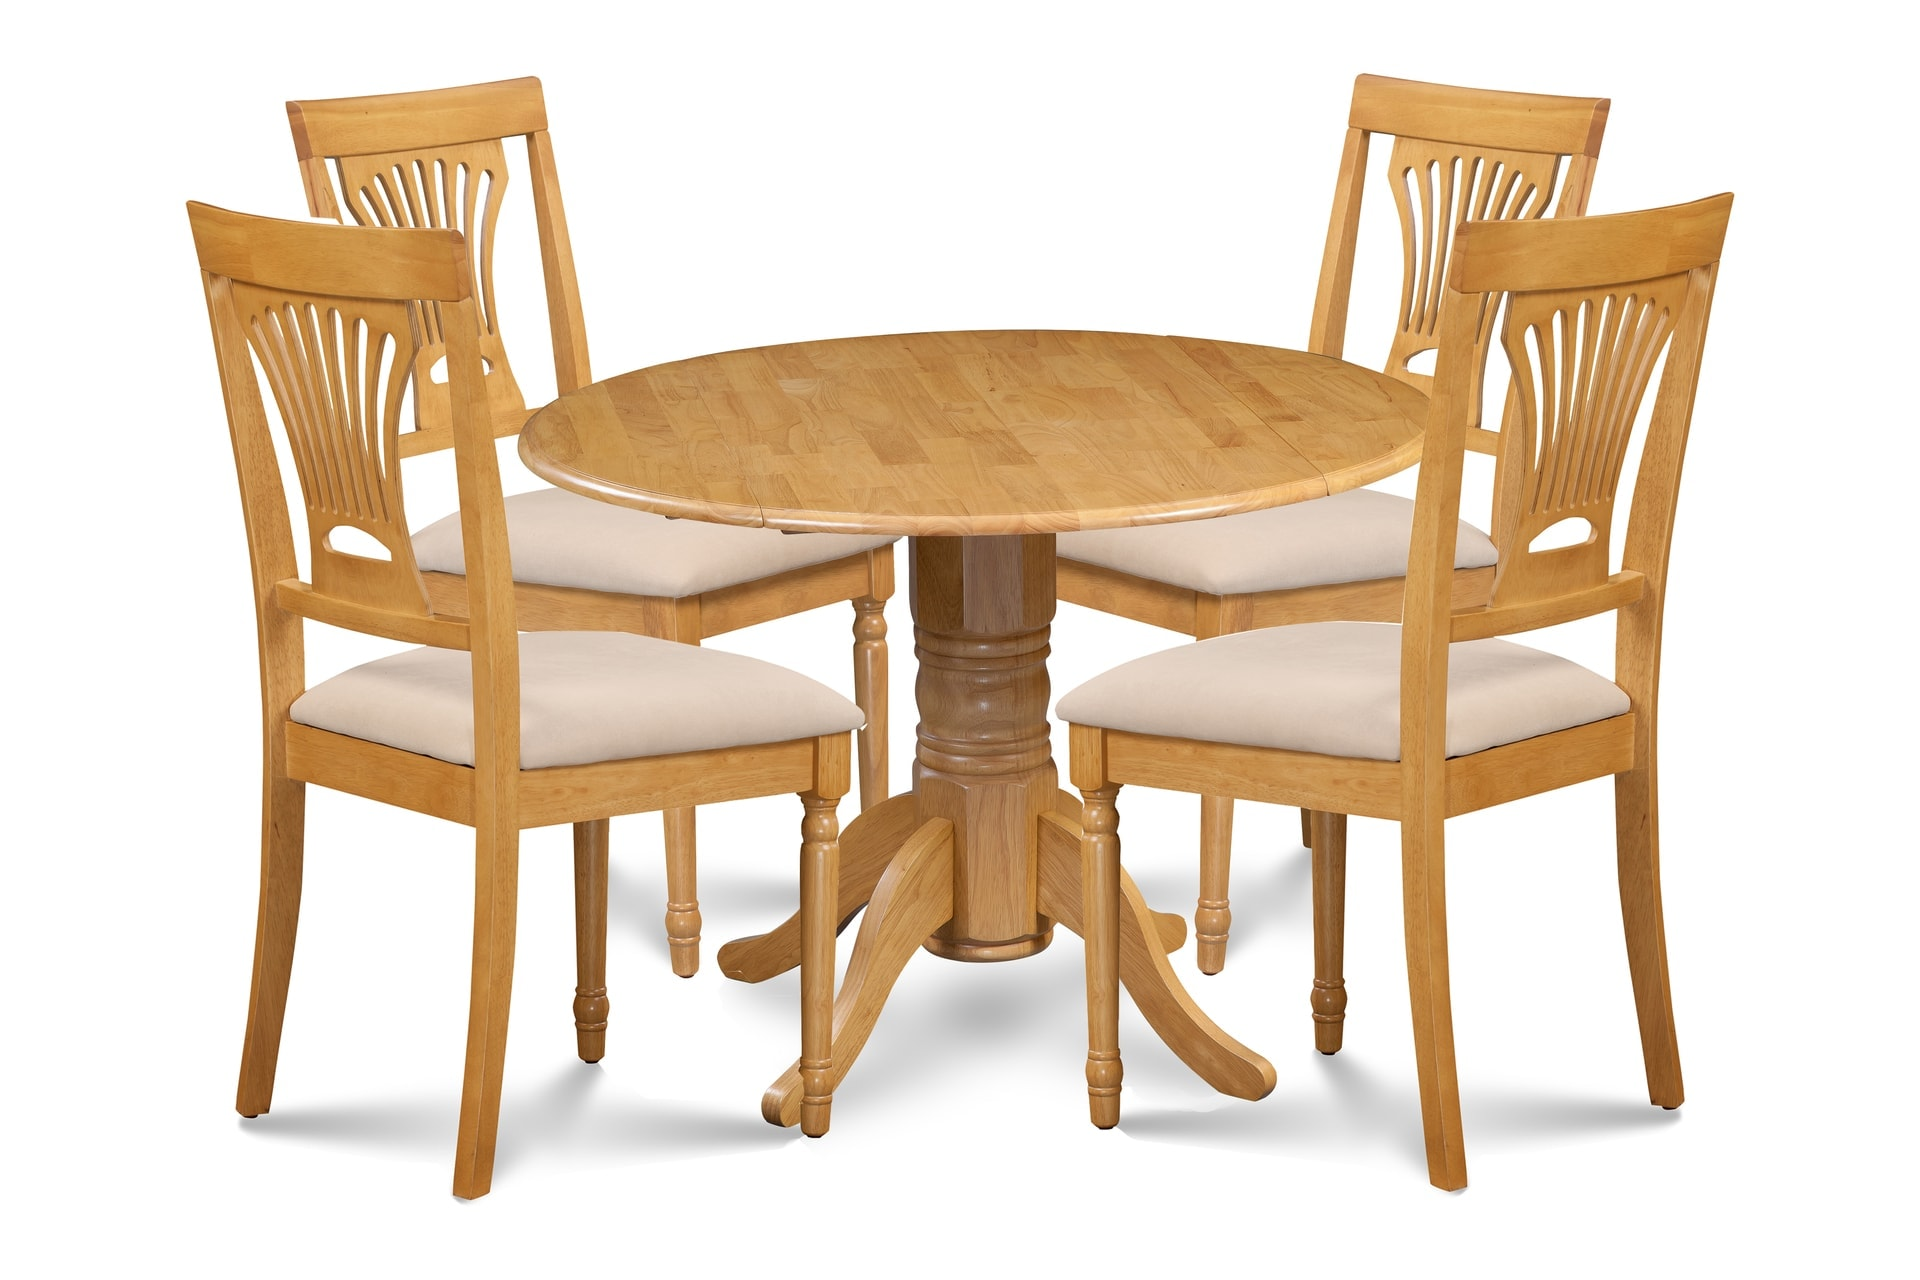 Groovy Portland Solid Wood Dining Set Of 5 With Dunes Table In Oak Finish Creativecarmelina Interior Chair Design Creativecarmelinacom